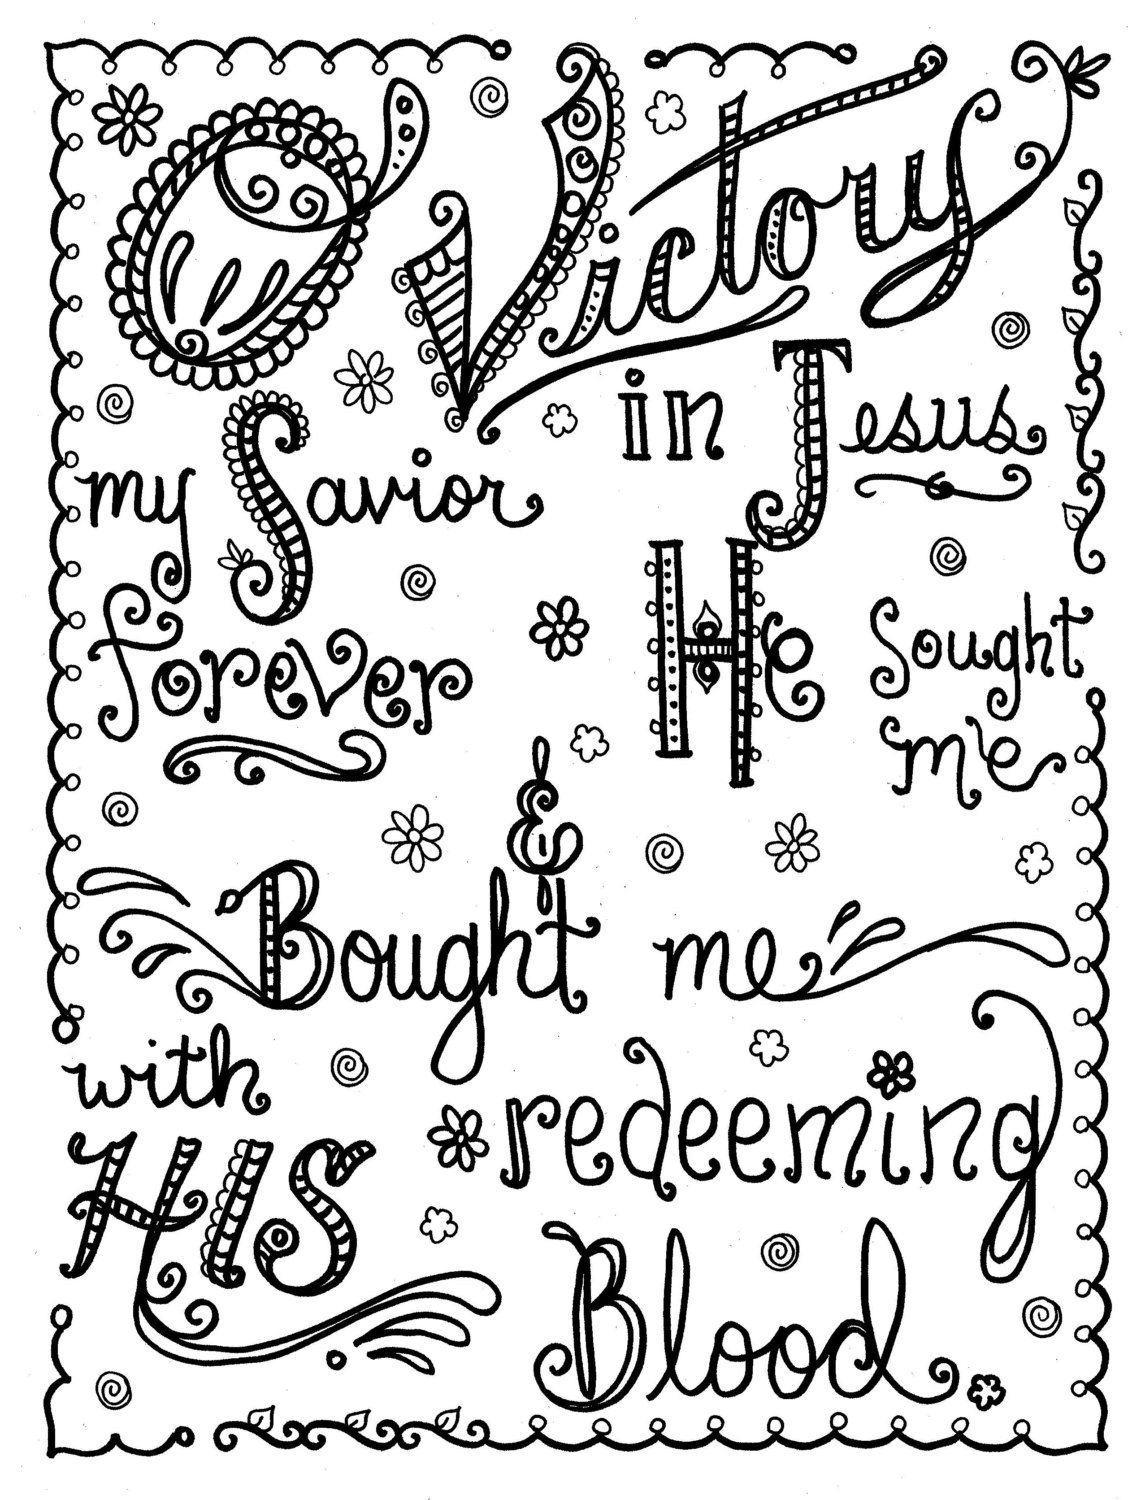 Hymn-spiration 2 Coloring pages you be the Artist